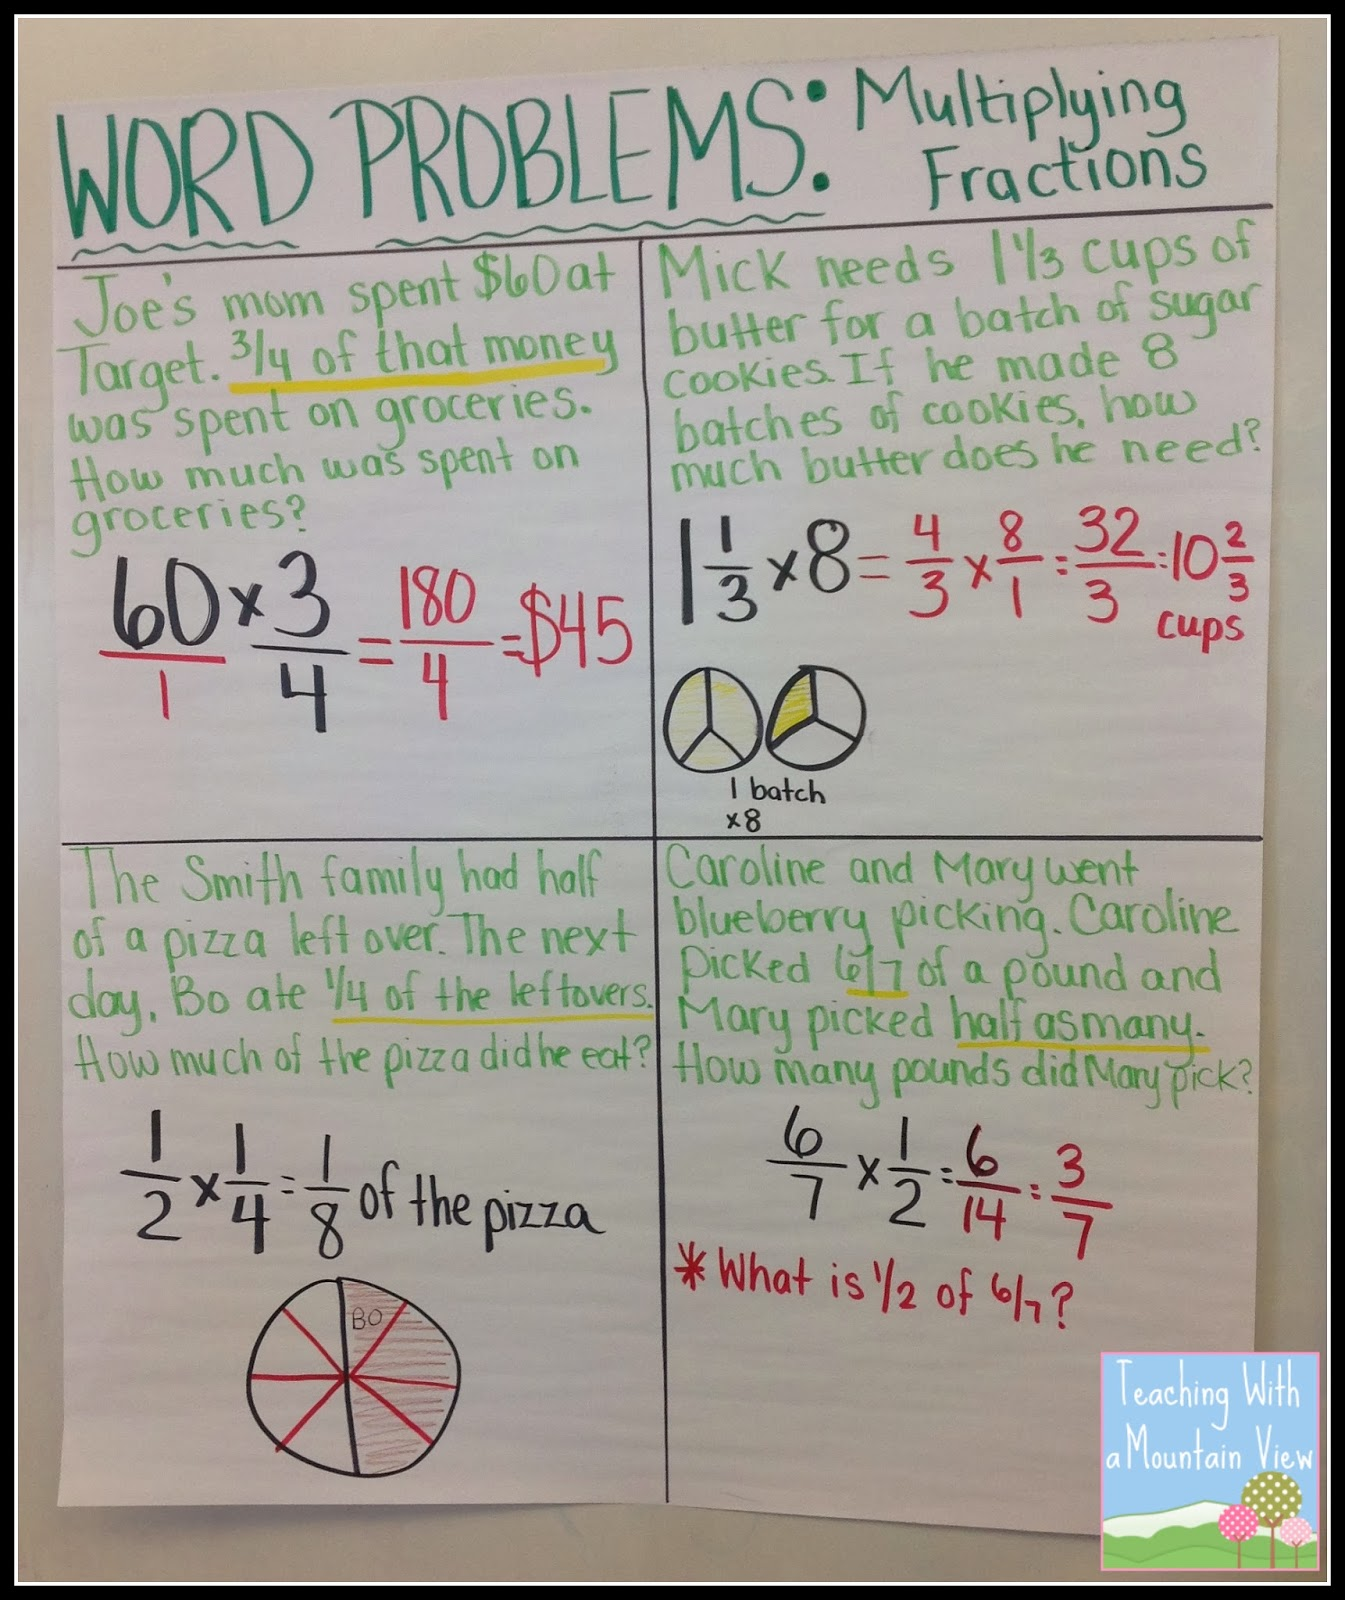 Worksheet Multiplying And Dividing Fractions Word Problems teaching with a mountain view making sense of multiplying we dissected these word problems underlined key phrases that they felt helped them to know what type problem were reading and d